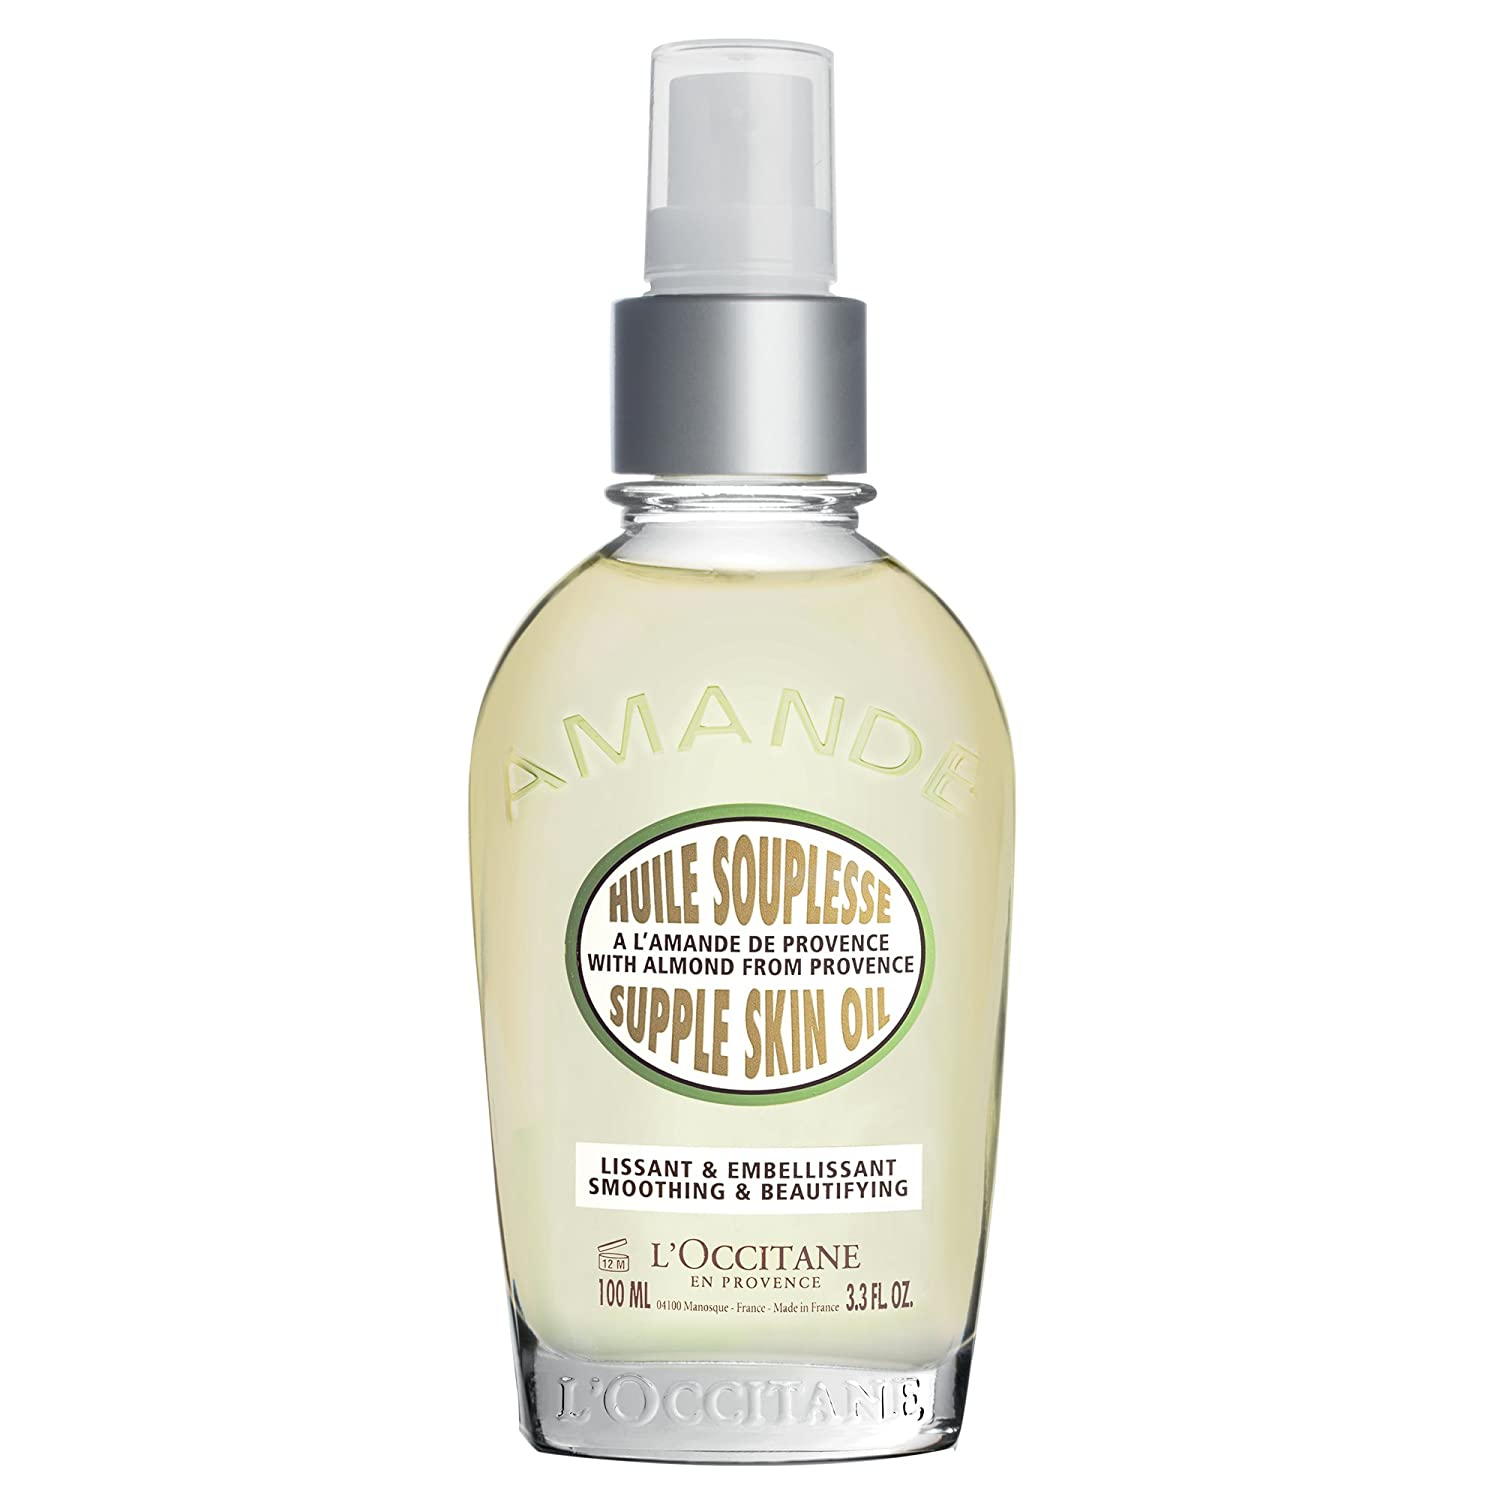 L'Occitane Almond Supple Skin Oil, 3.4 fl. oz, U-SC-1835 L' Occitane 29HS100A18